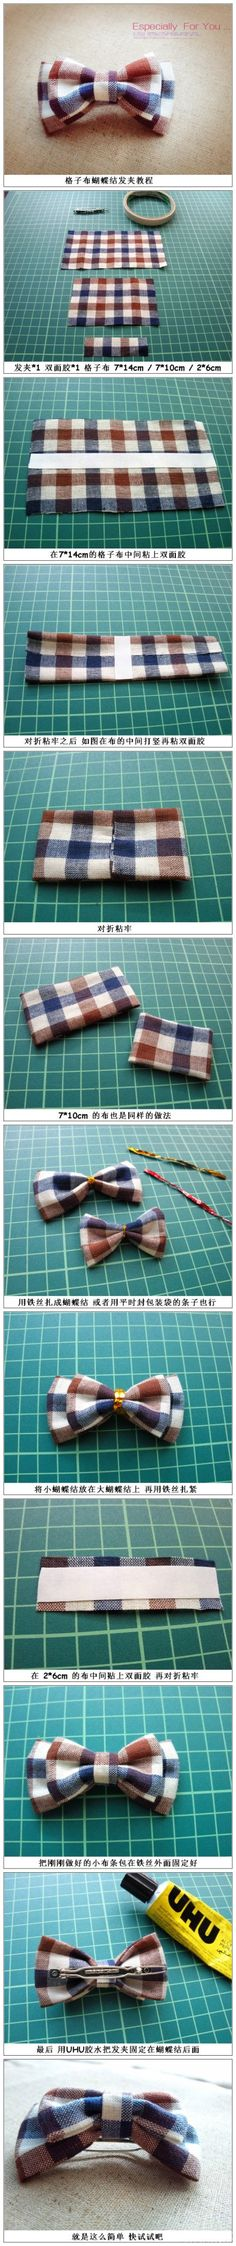 Bow tie tutorial - not in English but the pics are super easy to follow and the measurements are metric so it works out perfectly!! (I tried and it came out great)